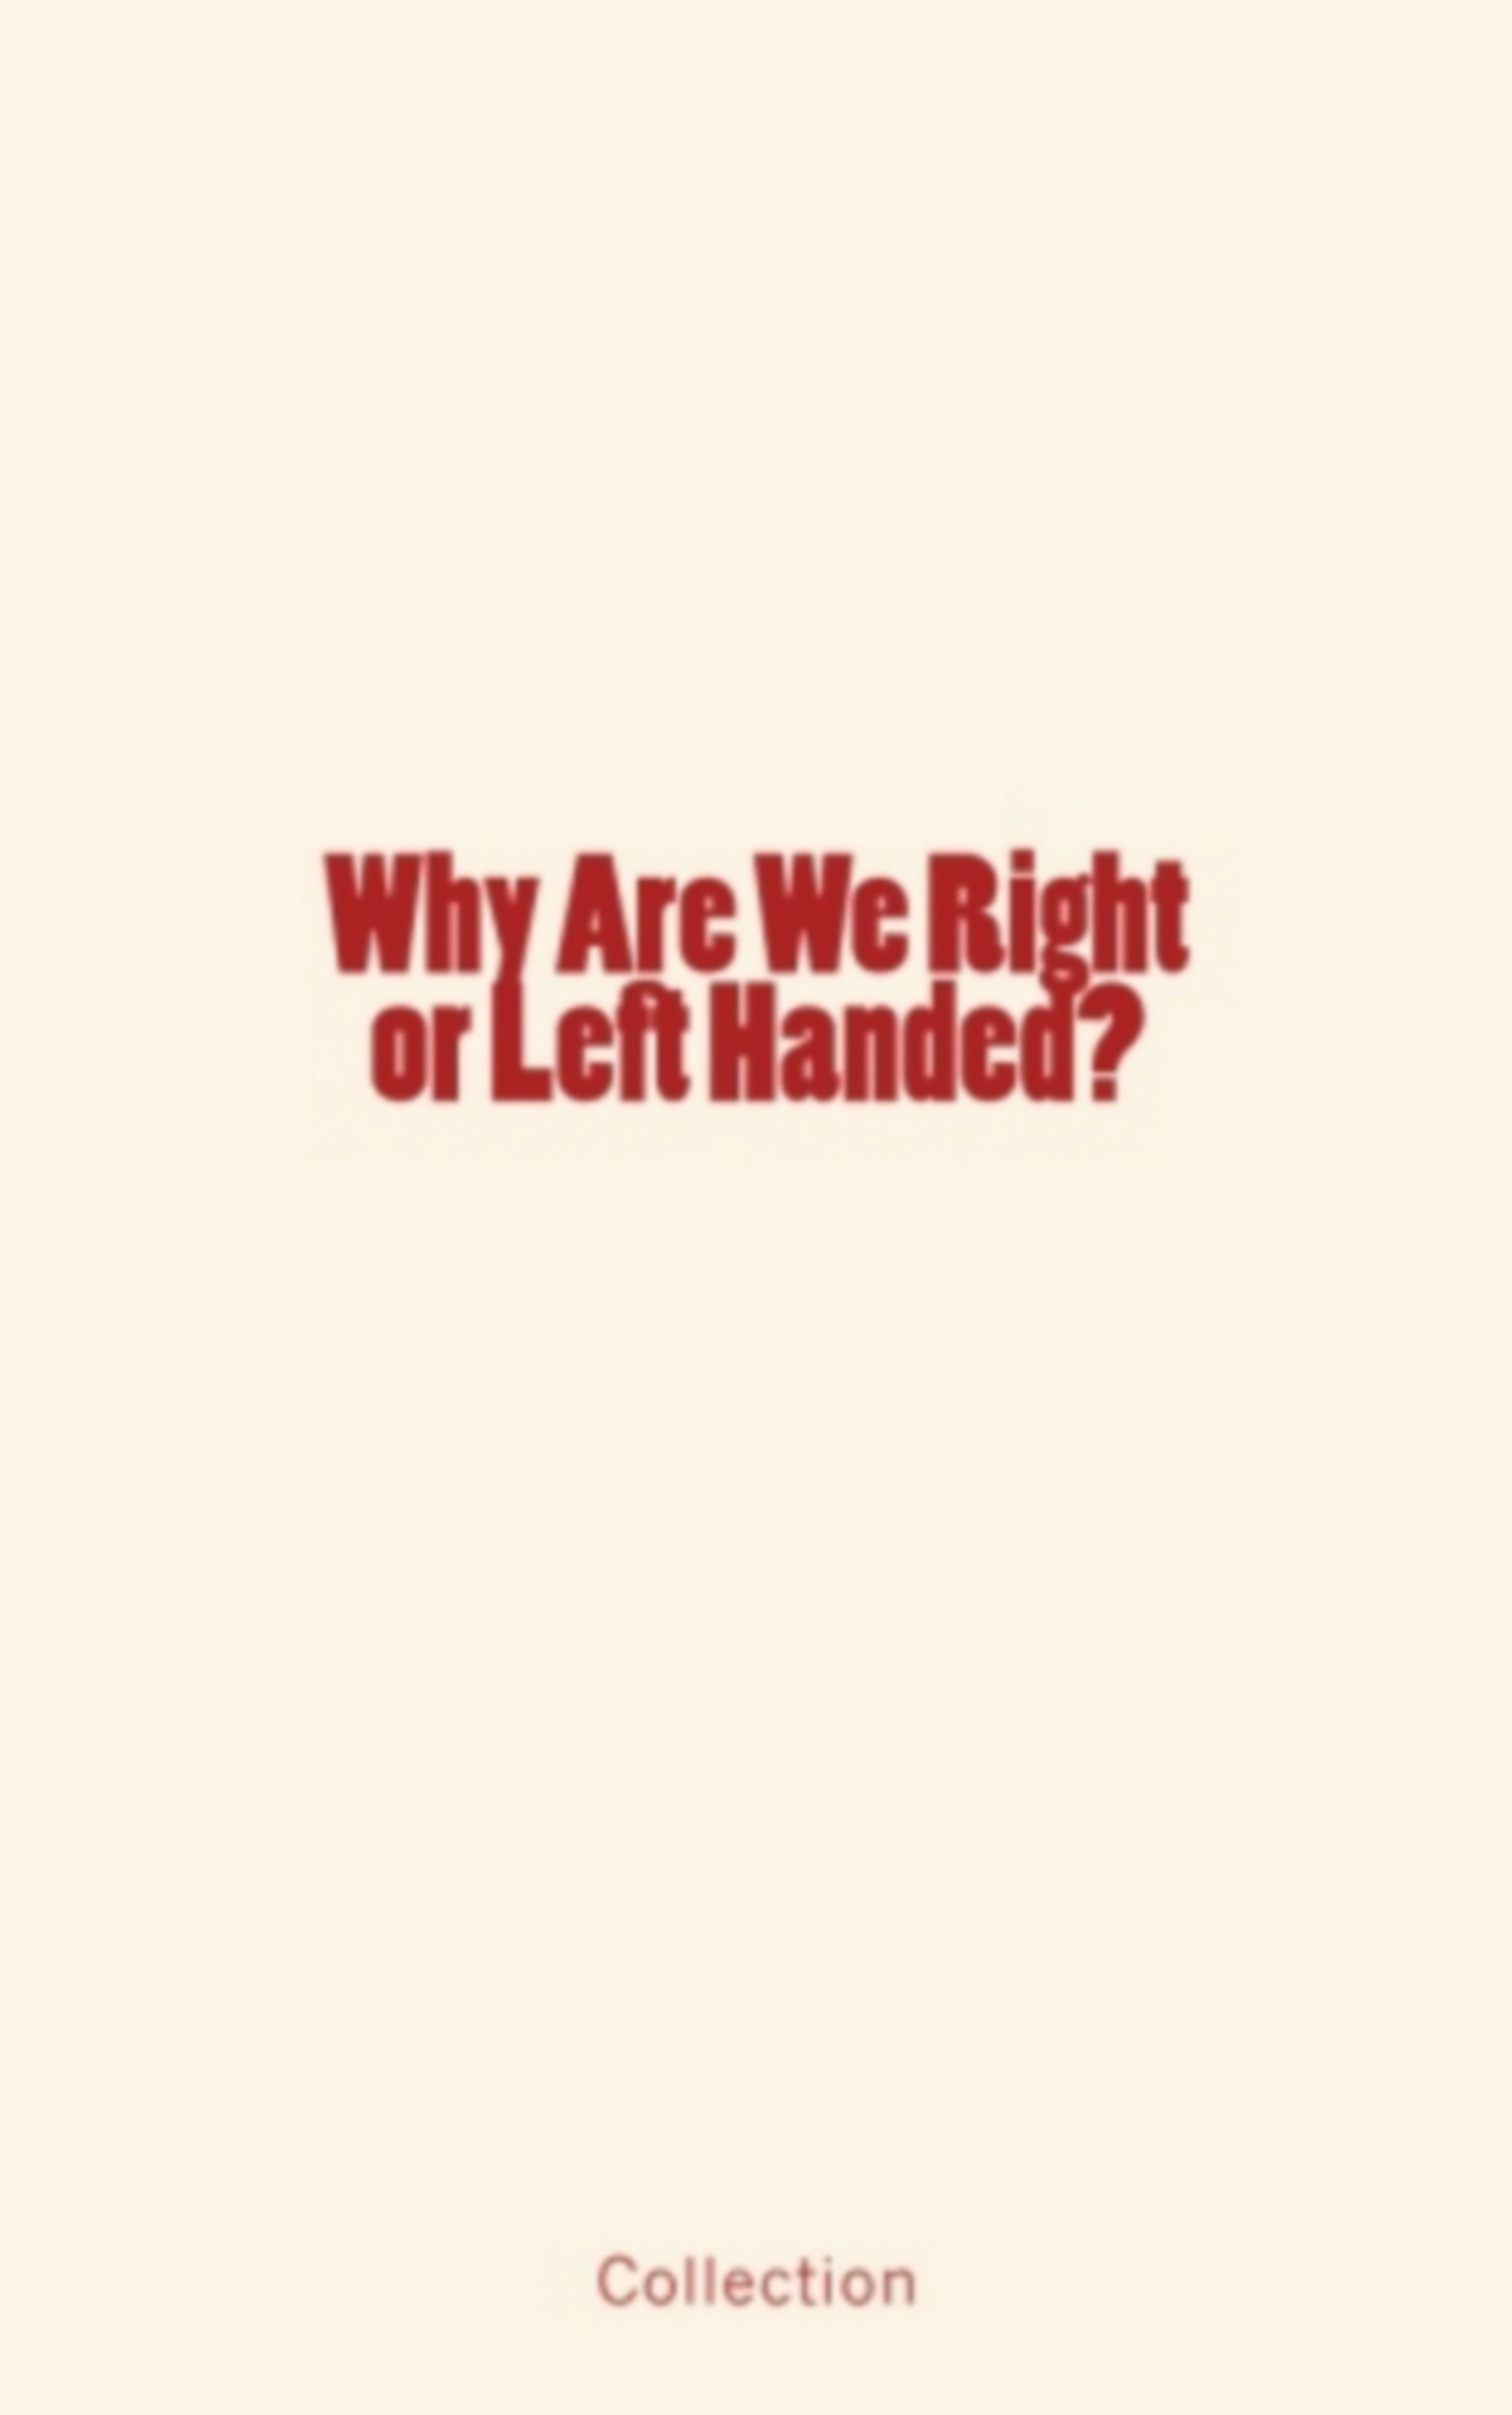 Why Are We Right or Left Handed?